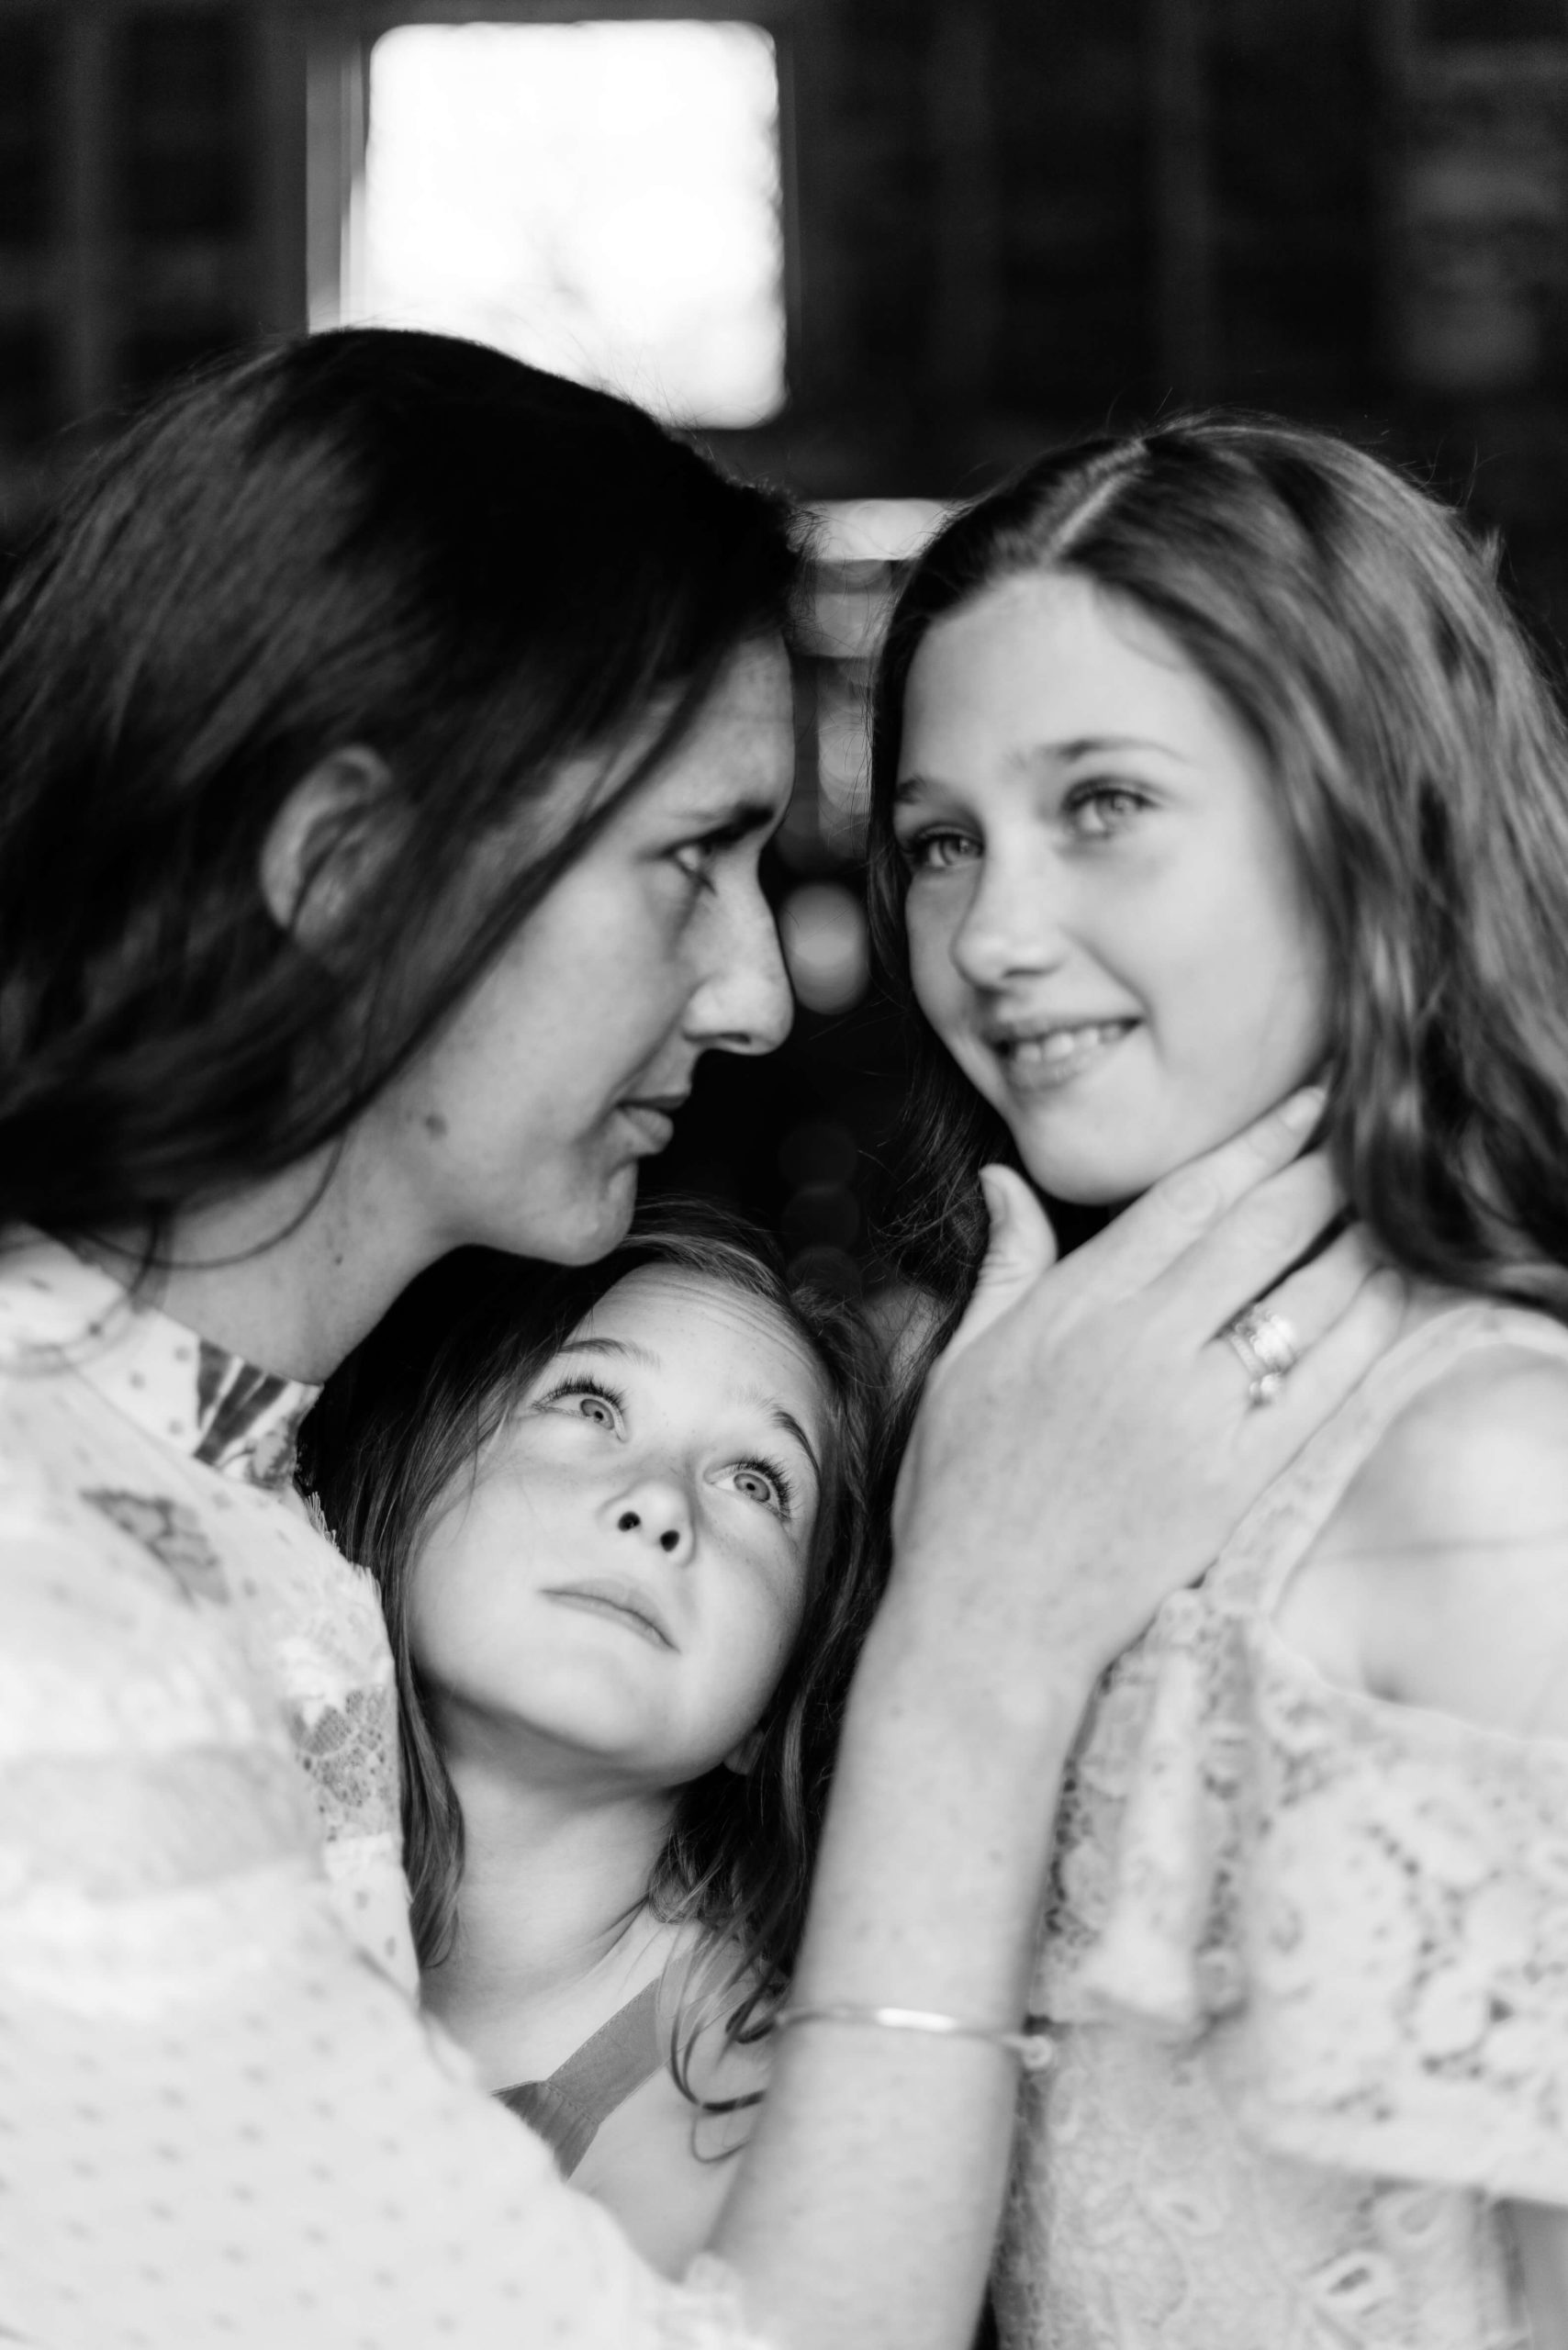 mother holds daughter's face as other daughter gazes at her sister in monochrome portrait of motherhood by Kika Mitchell photography Chelmsford photographer